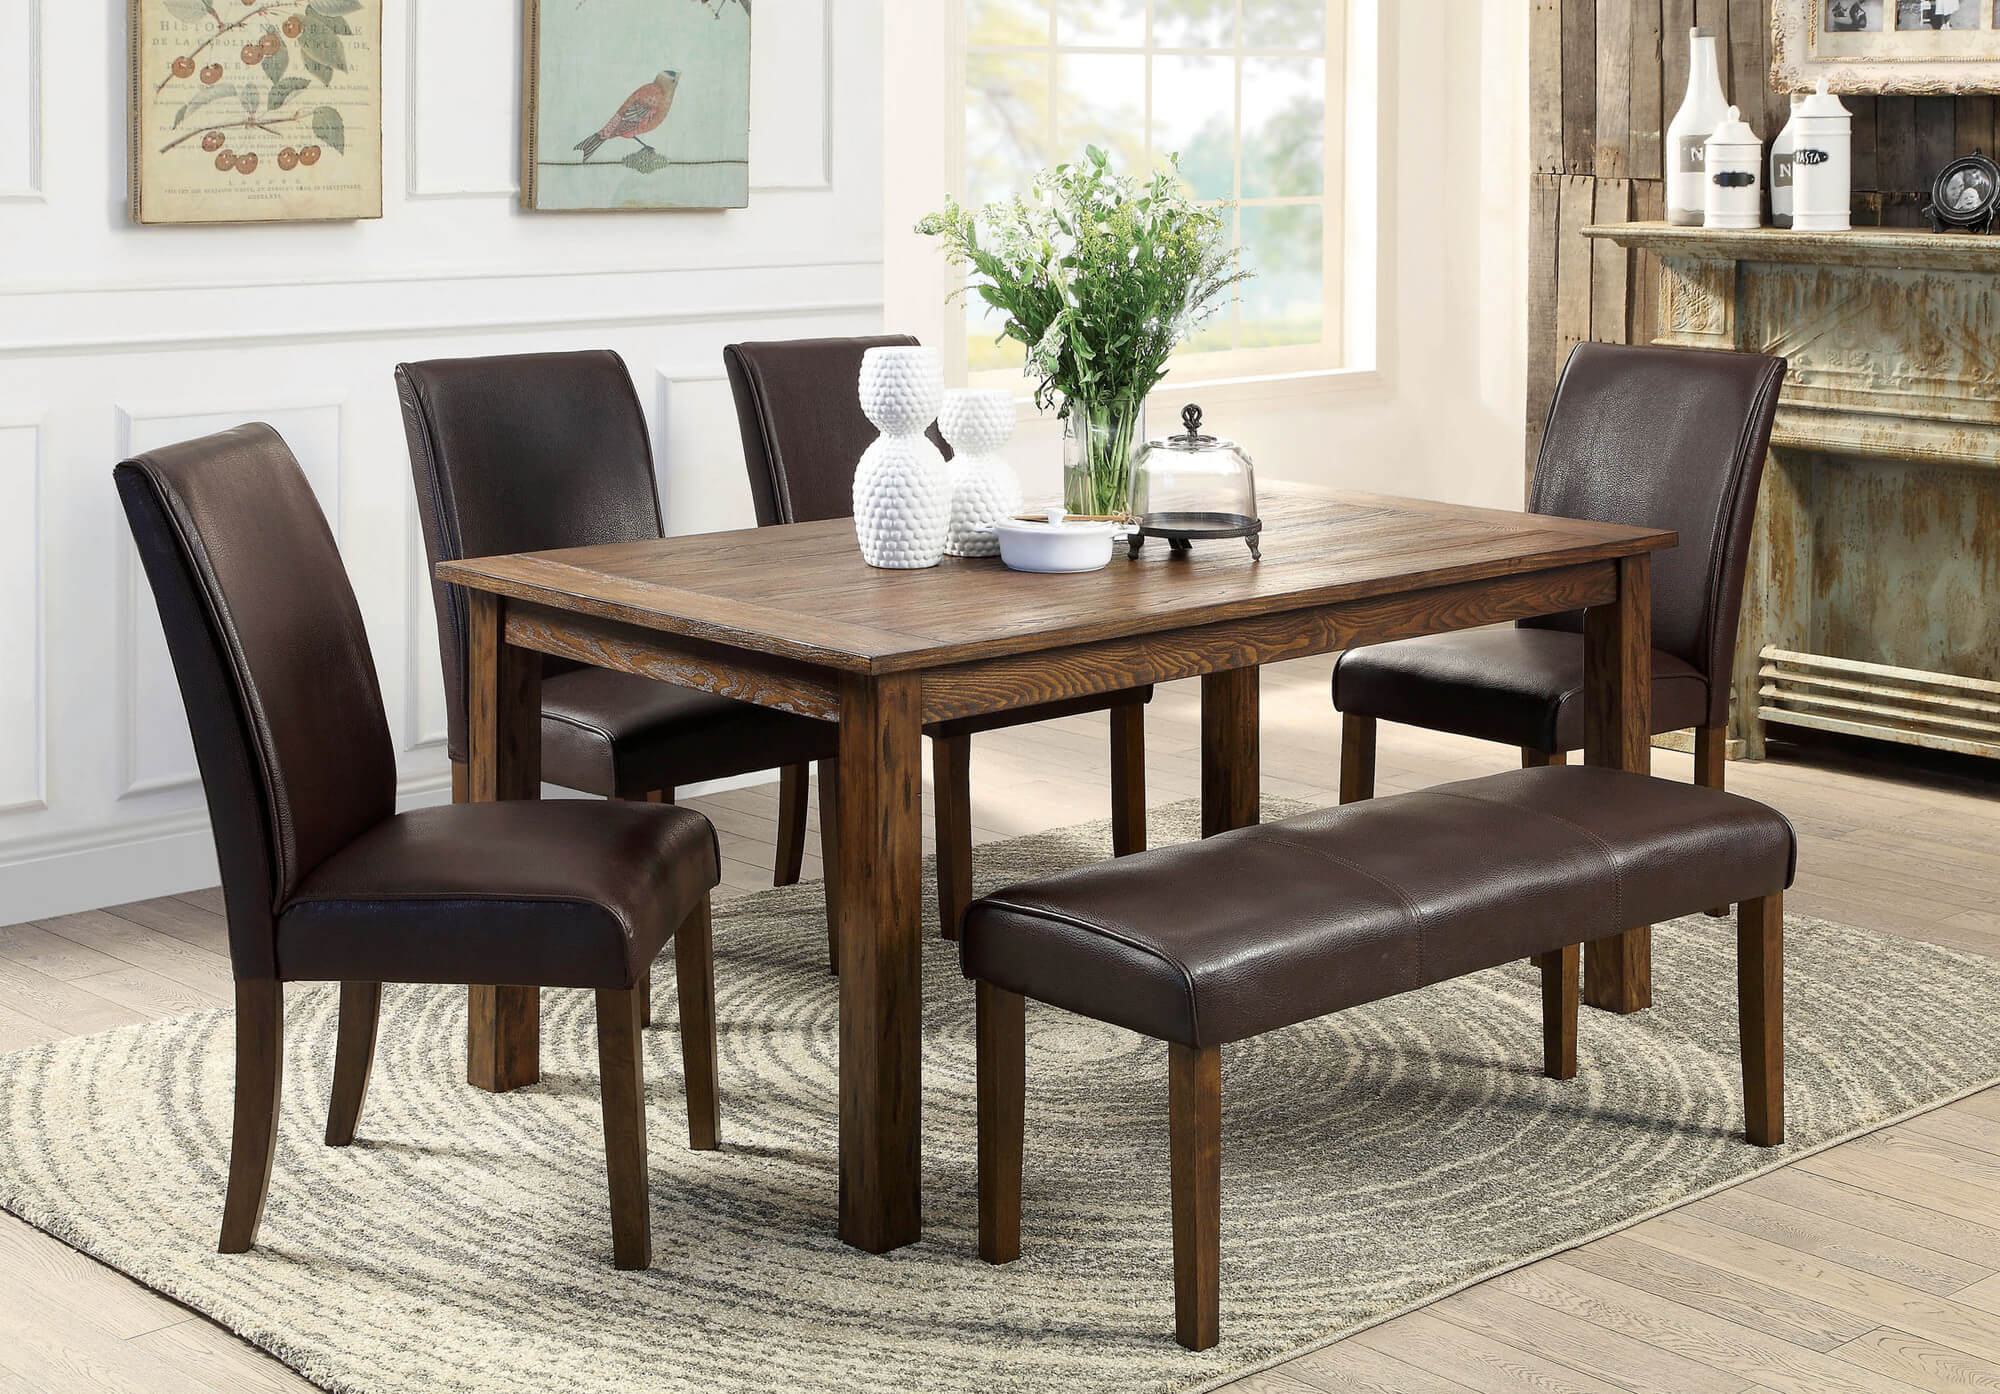 dining room sets bench seating square kitchen tables Here s a rustic rectangle dining table with fully cushioned chairs and bench This look works